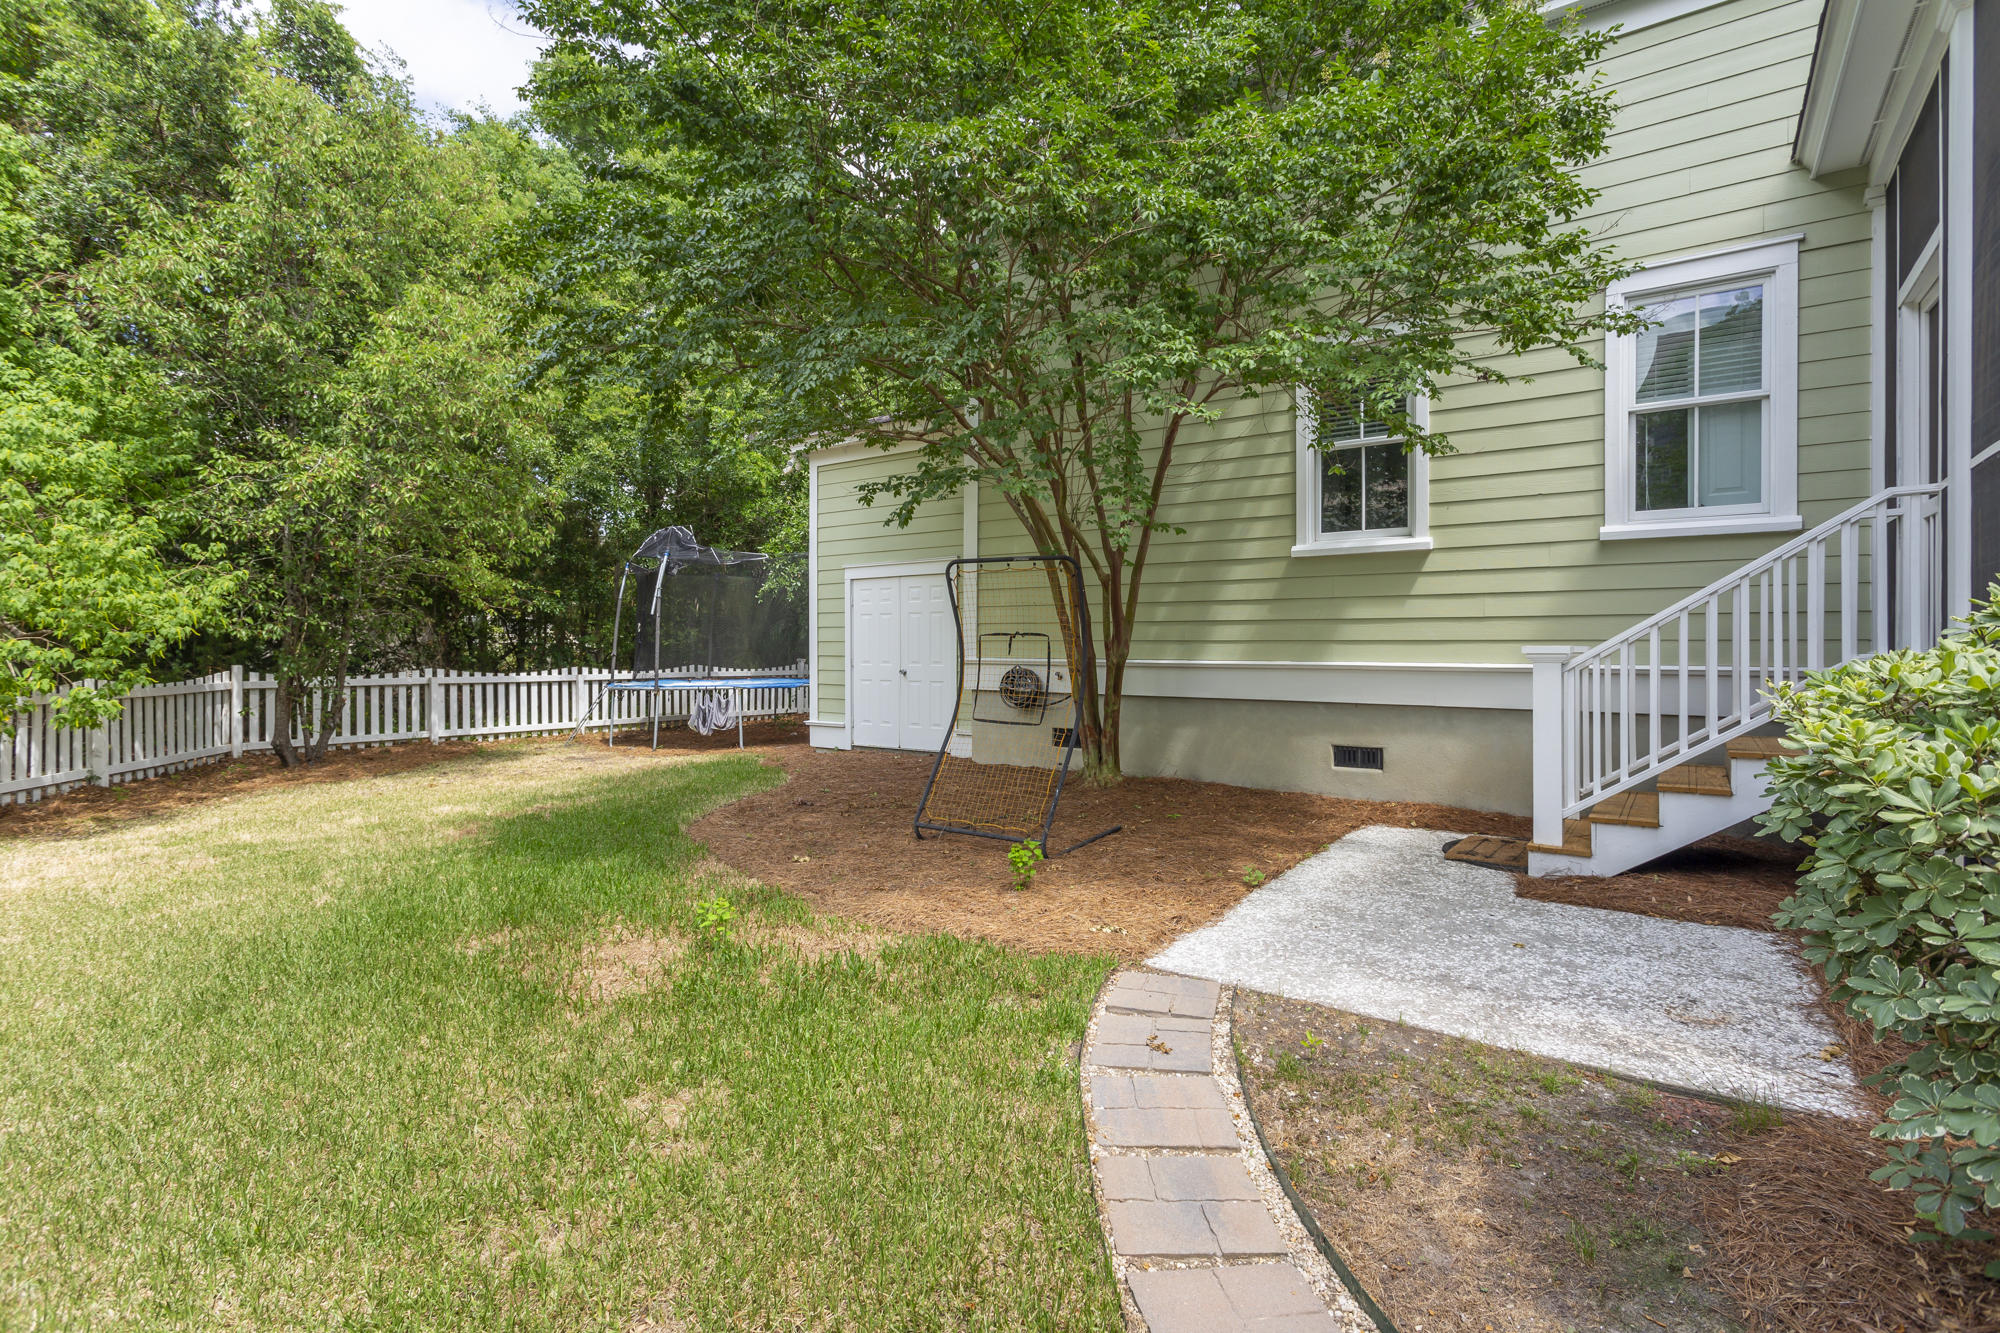 Belle Hall Homes For Sale - 328 Bermuda Towne, Mount Pleasant, SC - 23